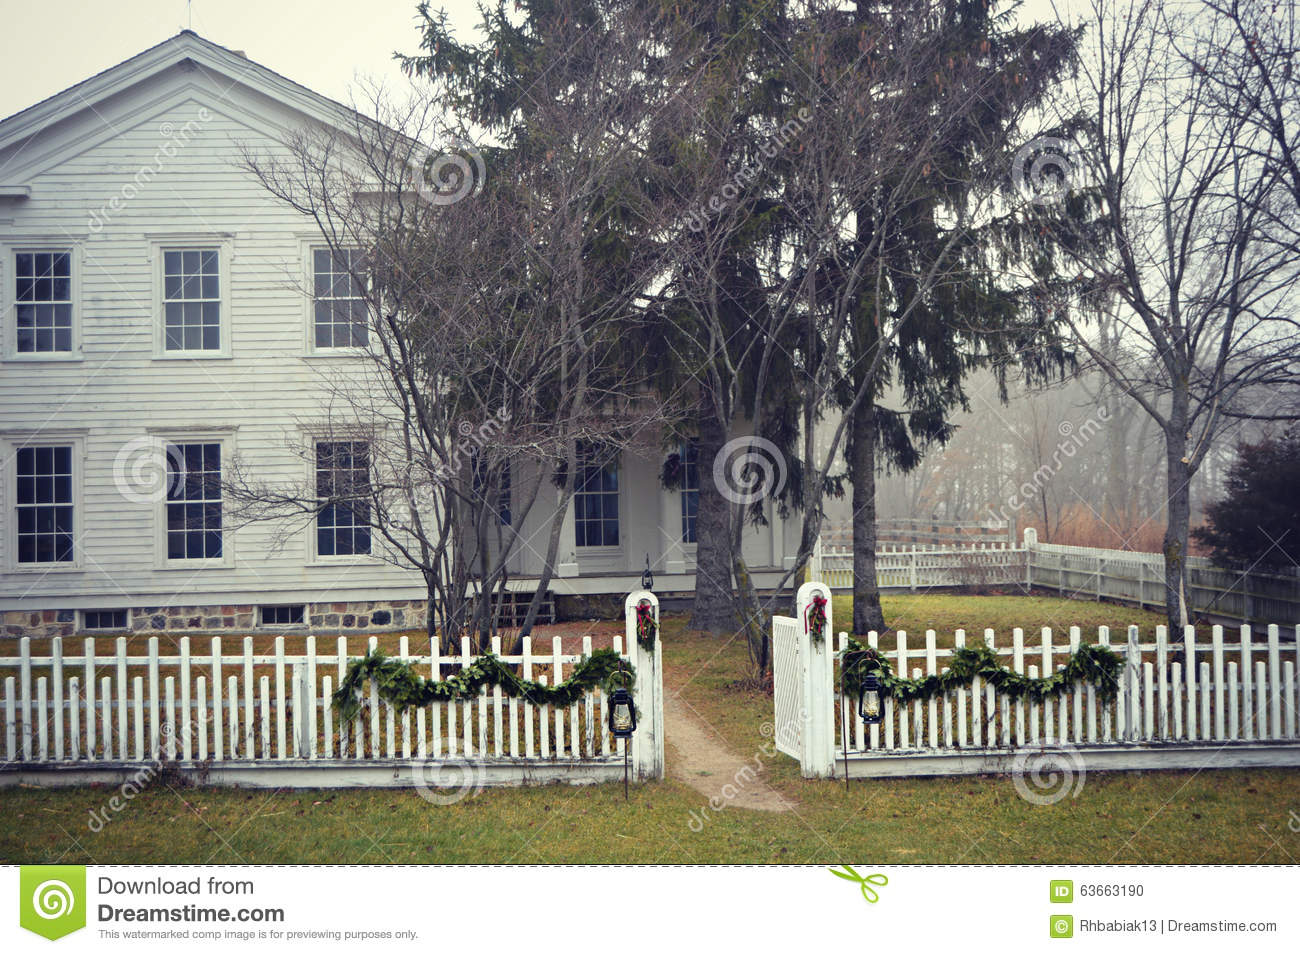 old fashioned house with white picket fence stock photo - image